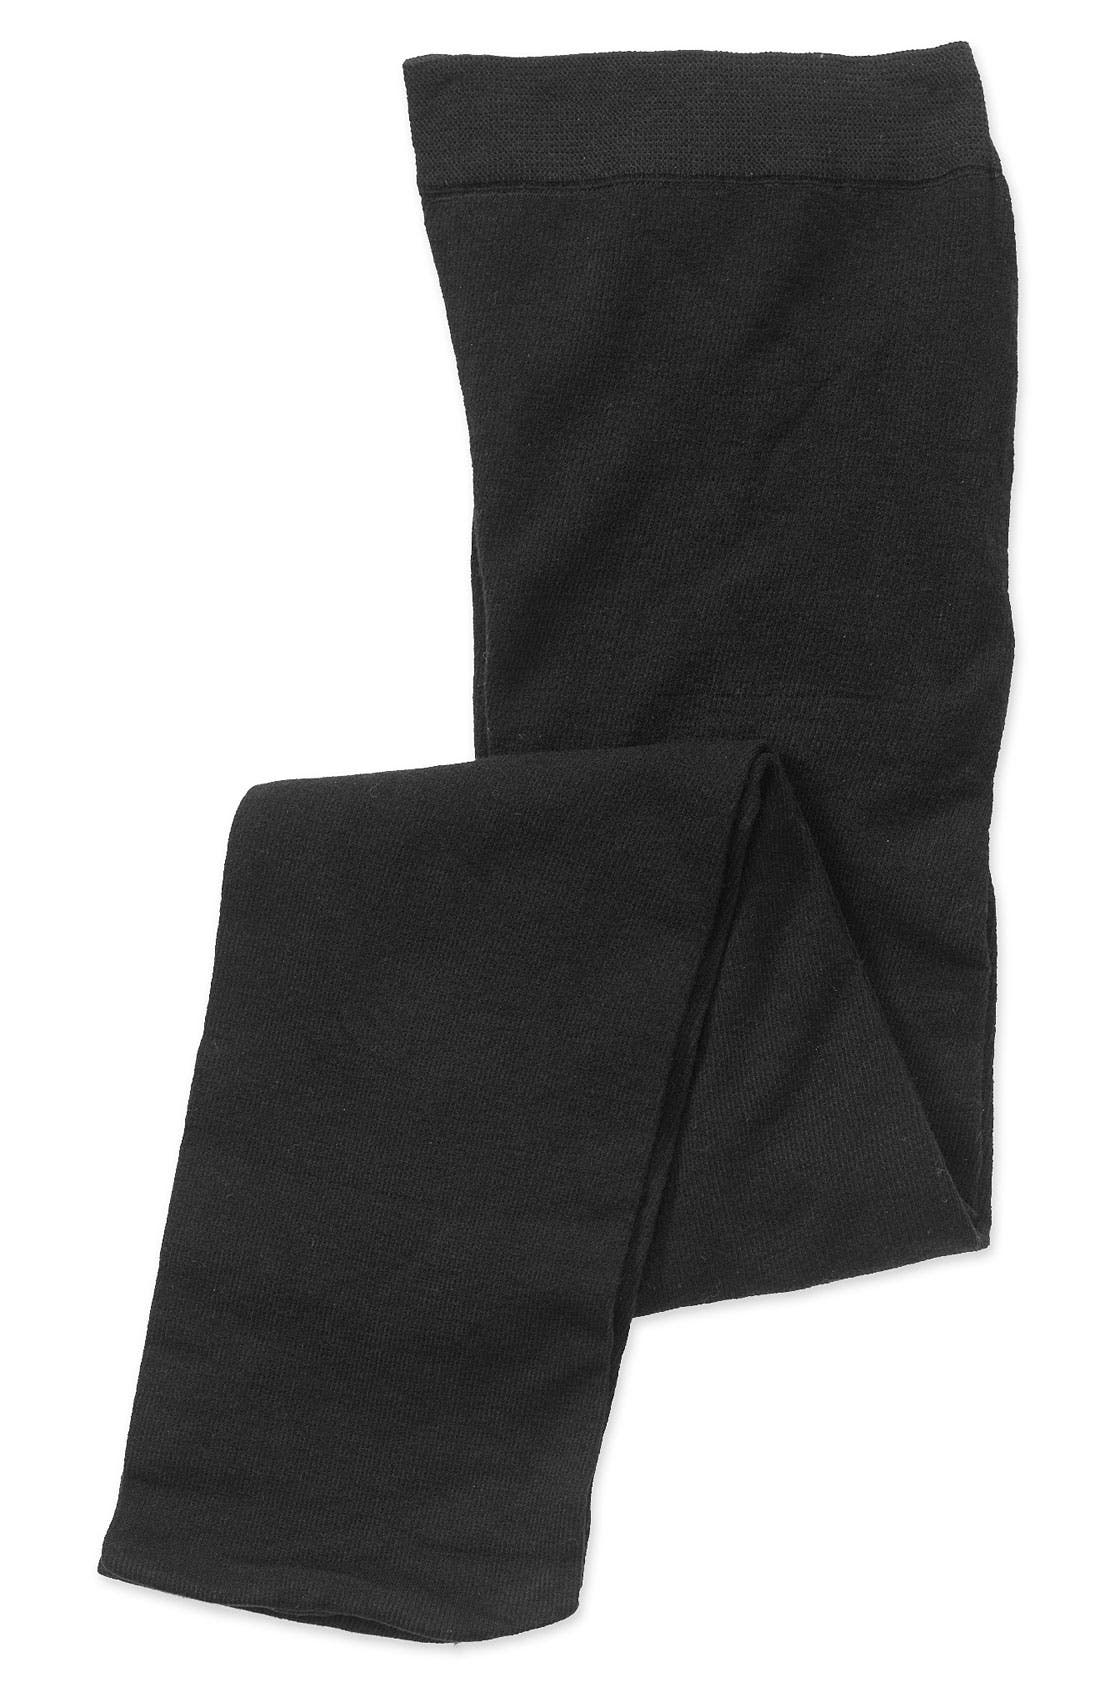 Main Image - Nordstrom Cotton Tights (Baby, Toddler, Little Kid & Big Kid) (3 for $21)